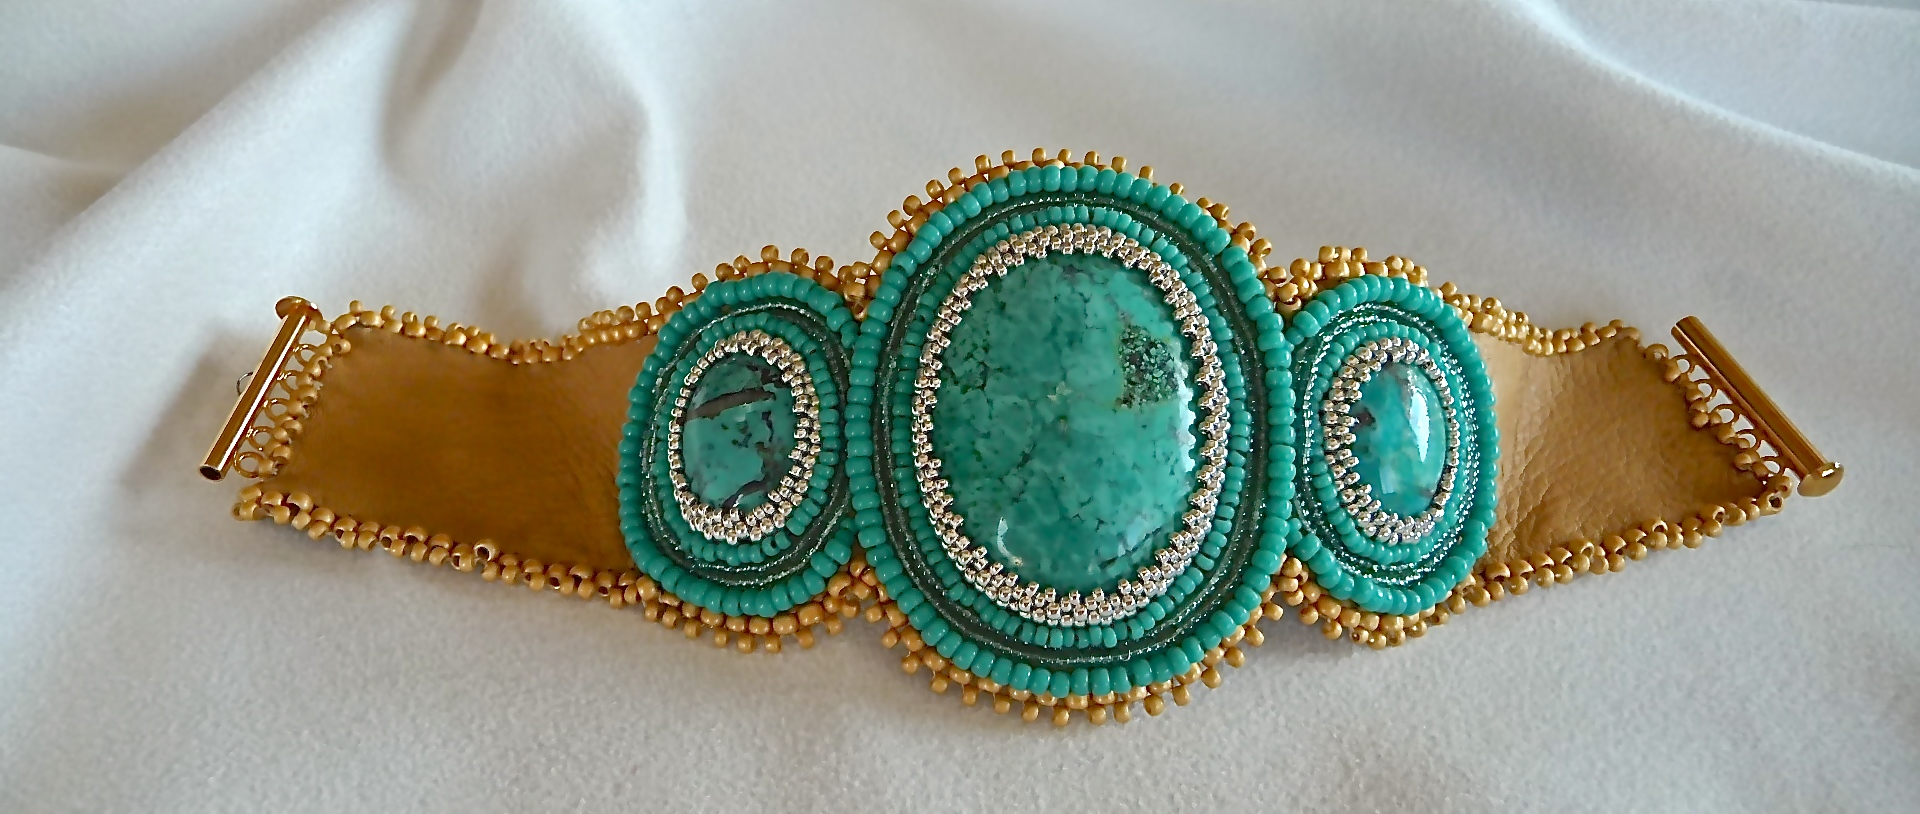 Turquoise Embroidered Leather Cuff